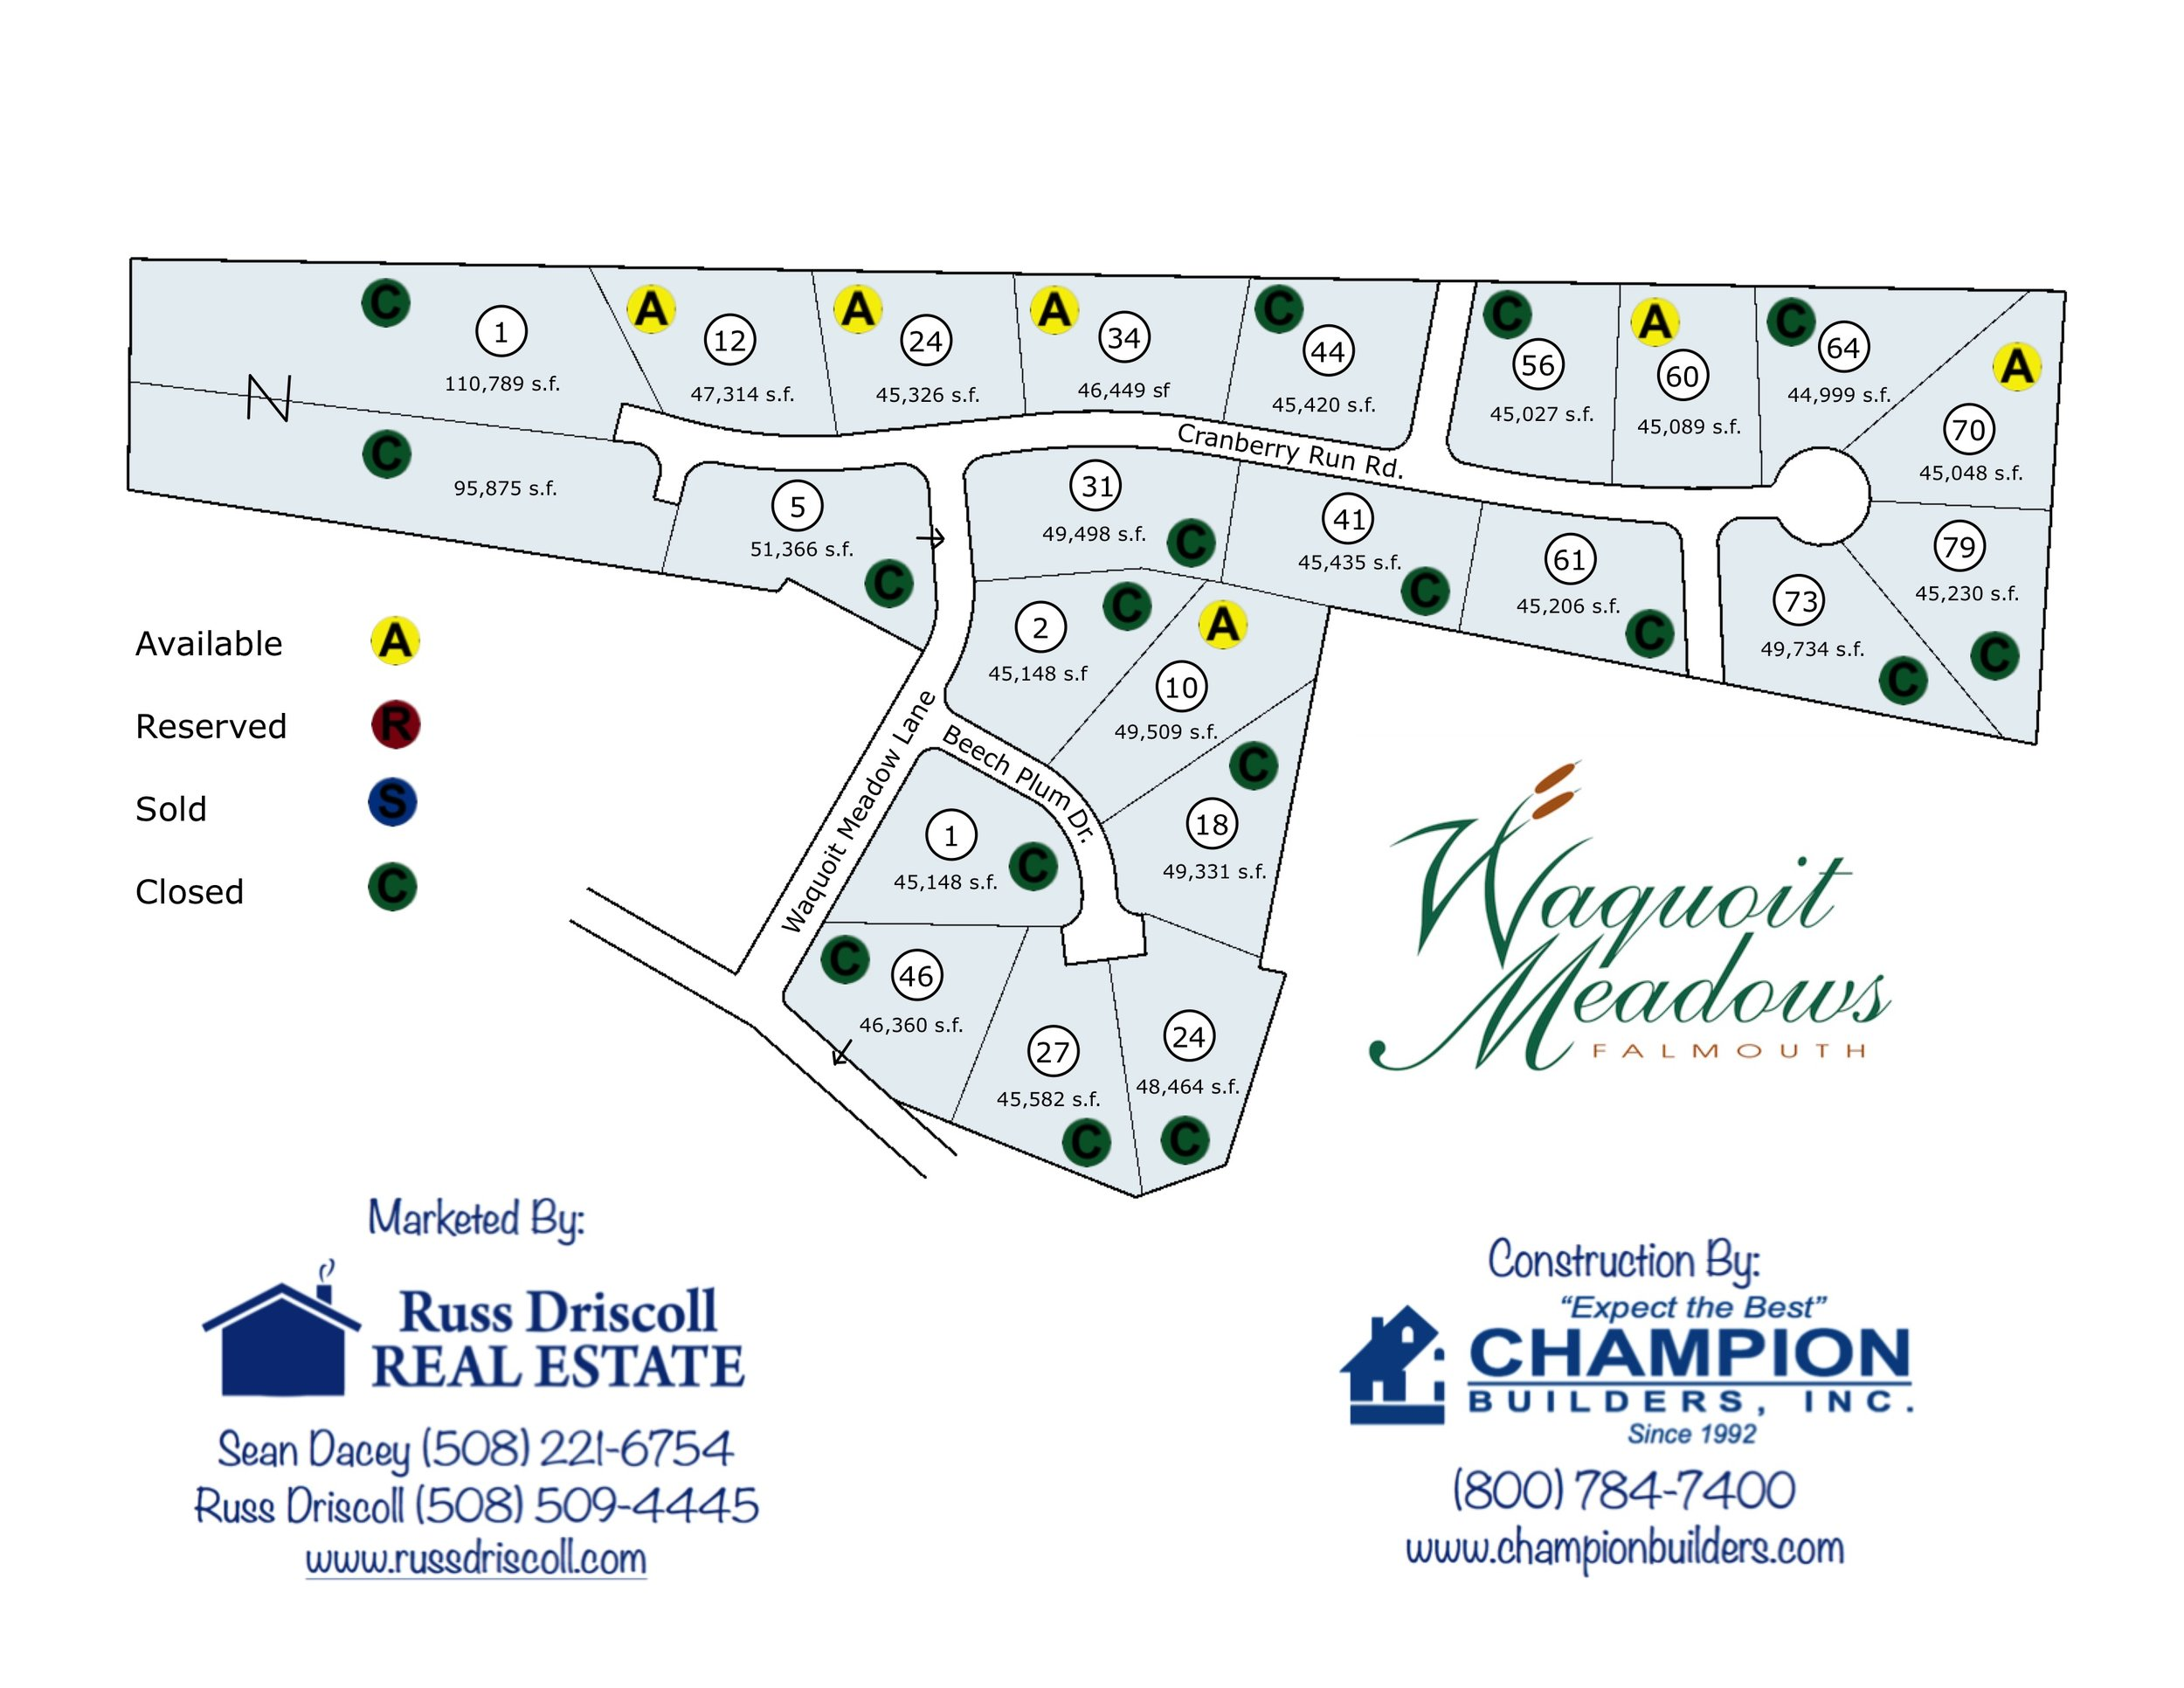 2018-05-20 - waquoit meadows layout address plan.jpg